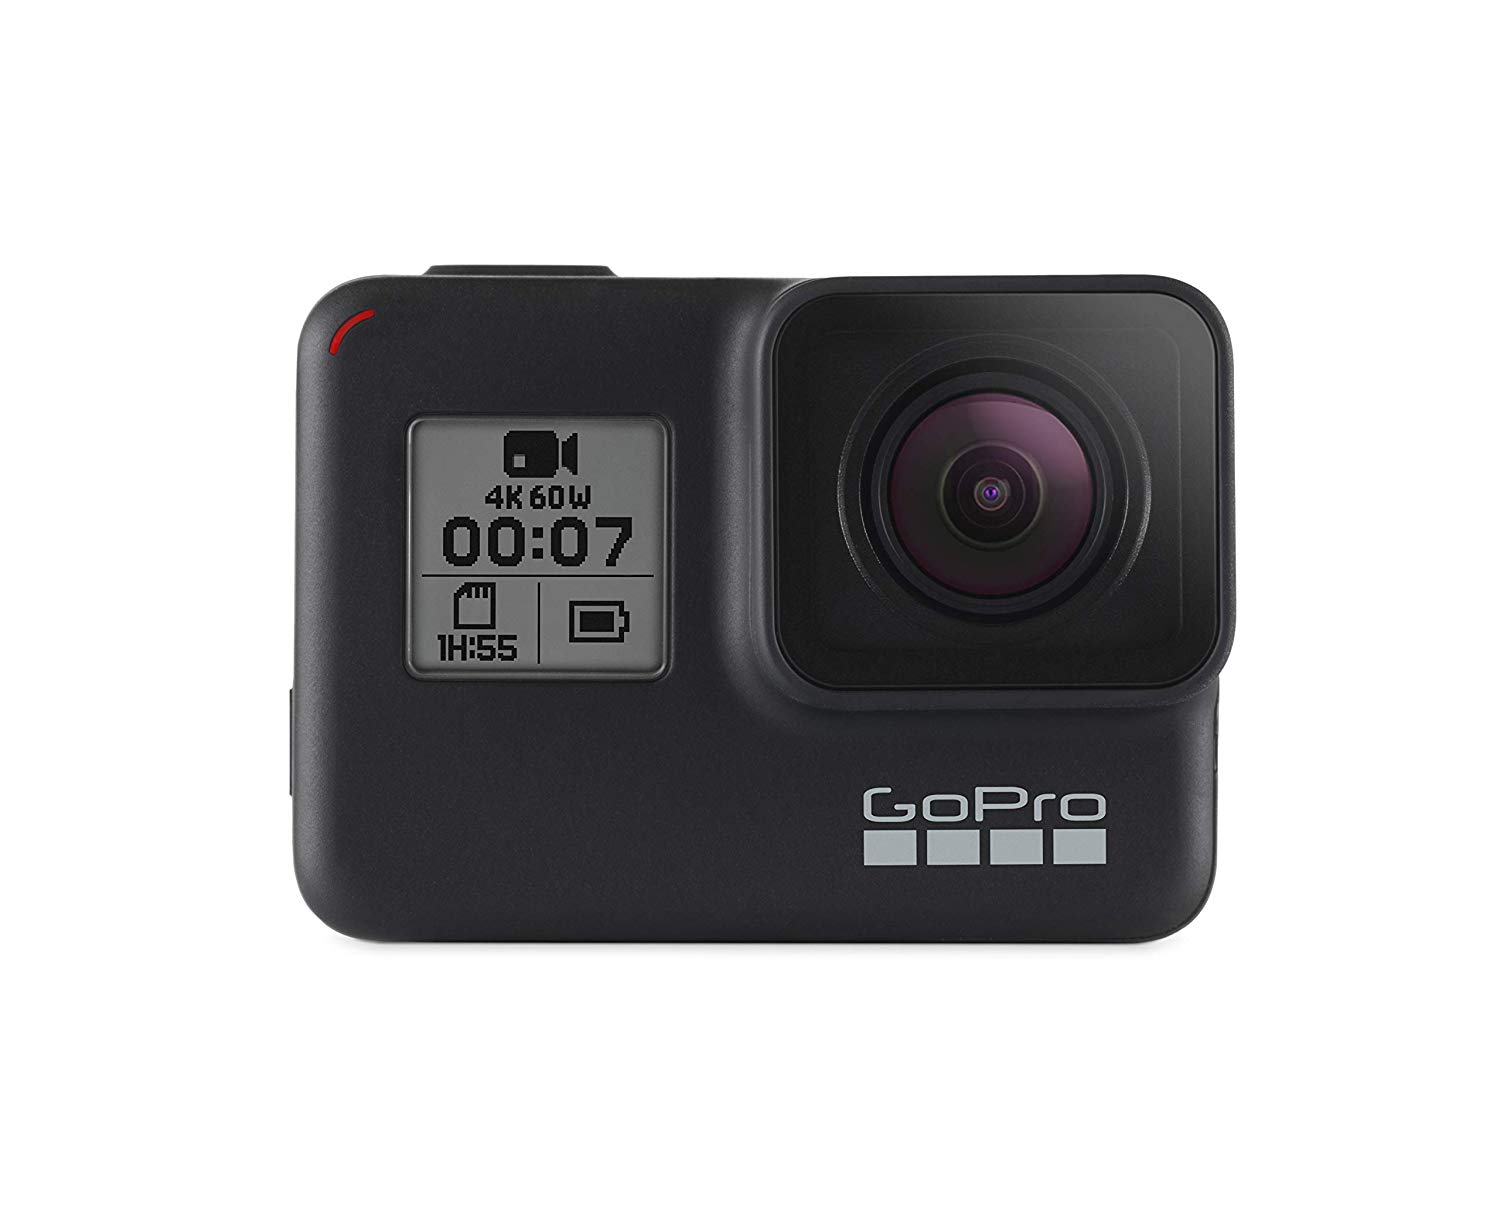 gifts for someone traveling abroad | gopro